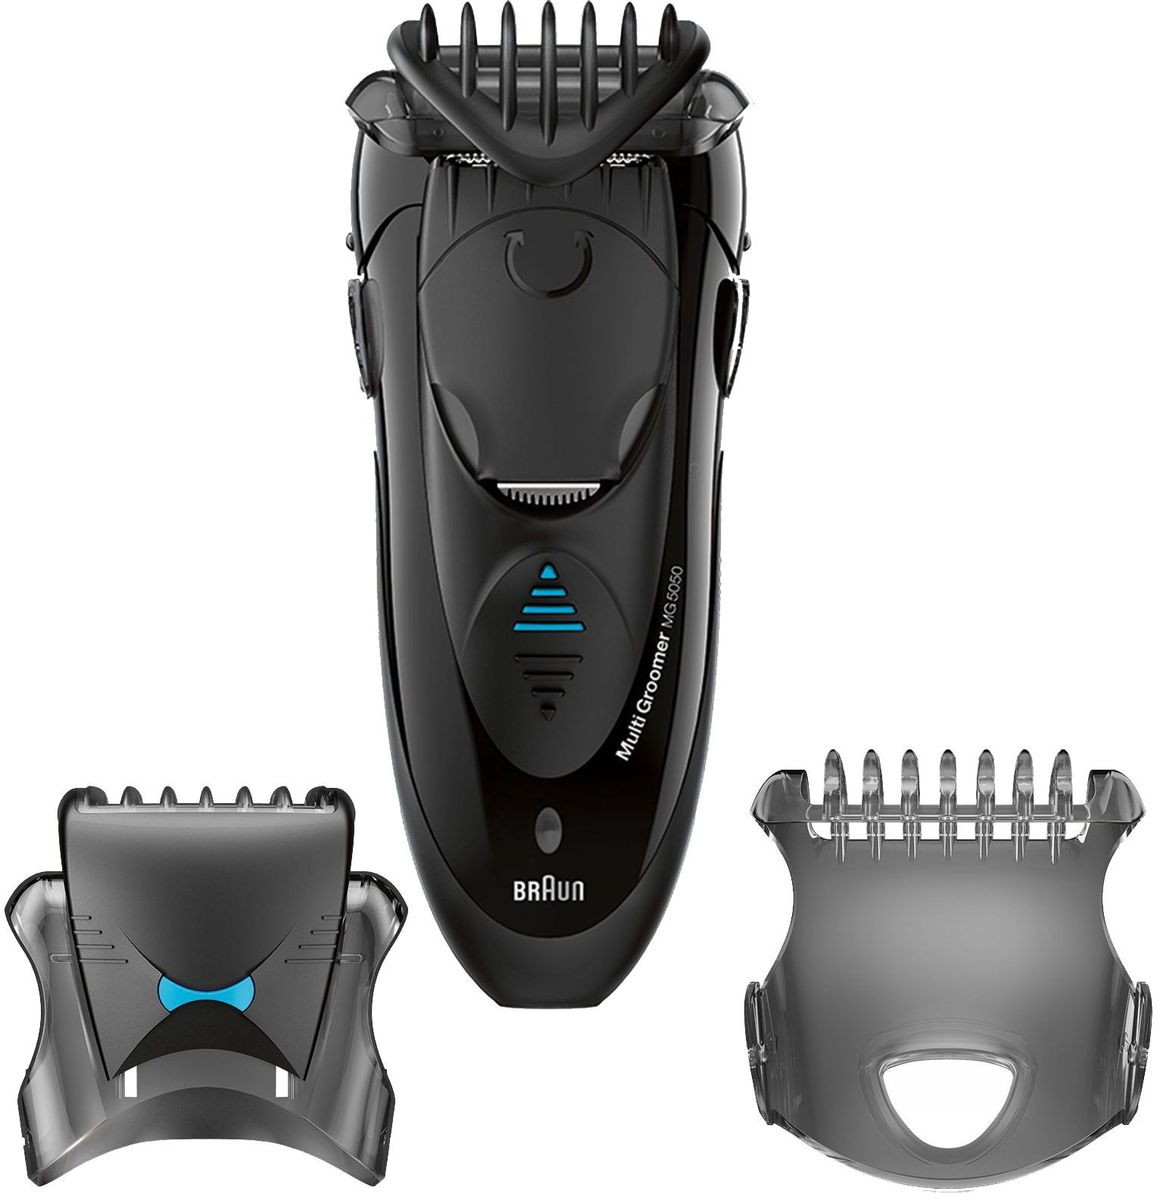 Braun Multi Groomer MG5050 электробритва - Бритвы